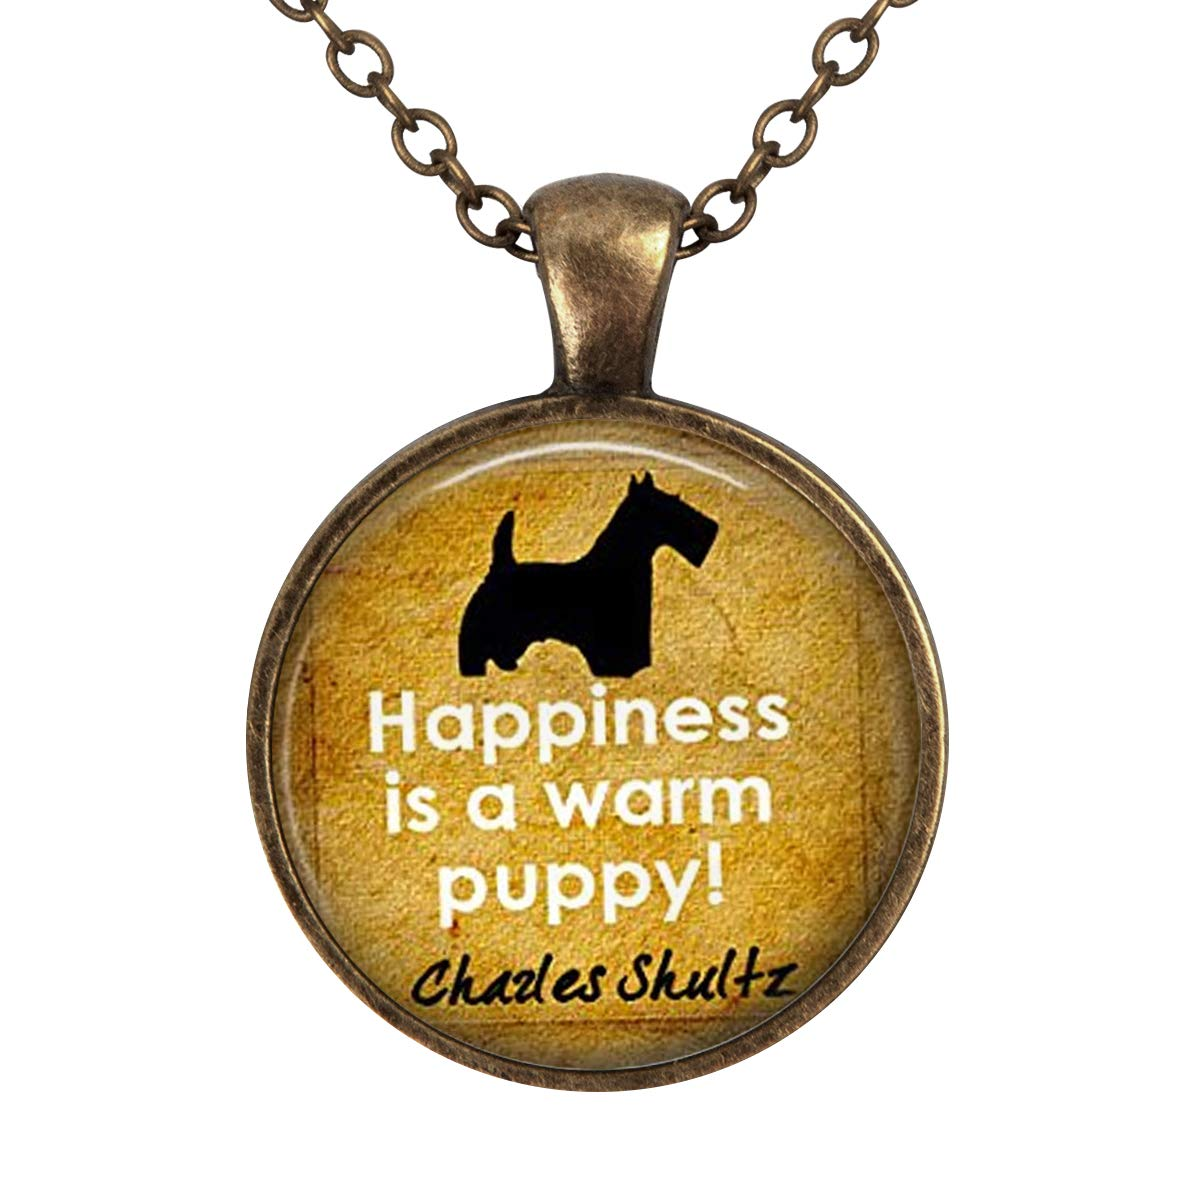 Lightrain Happiness is A Warm Puppy Pendant Necklace Vintage Bronze Chain Statement Necklace Handmade Jewelry Gifts